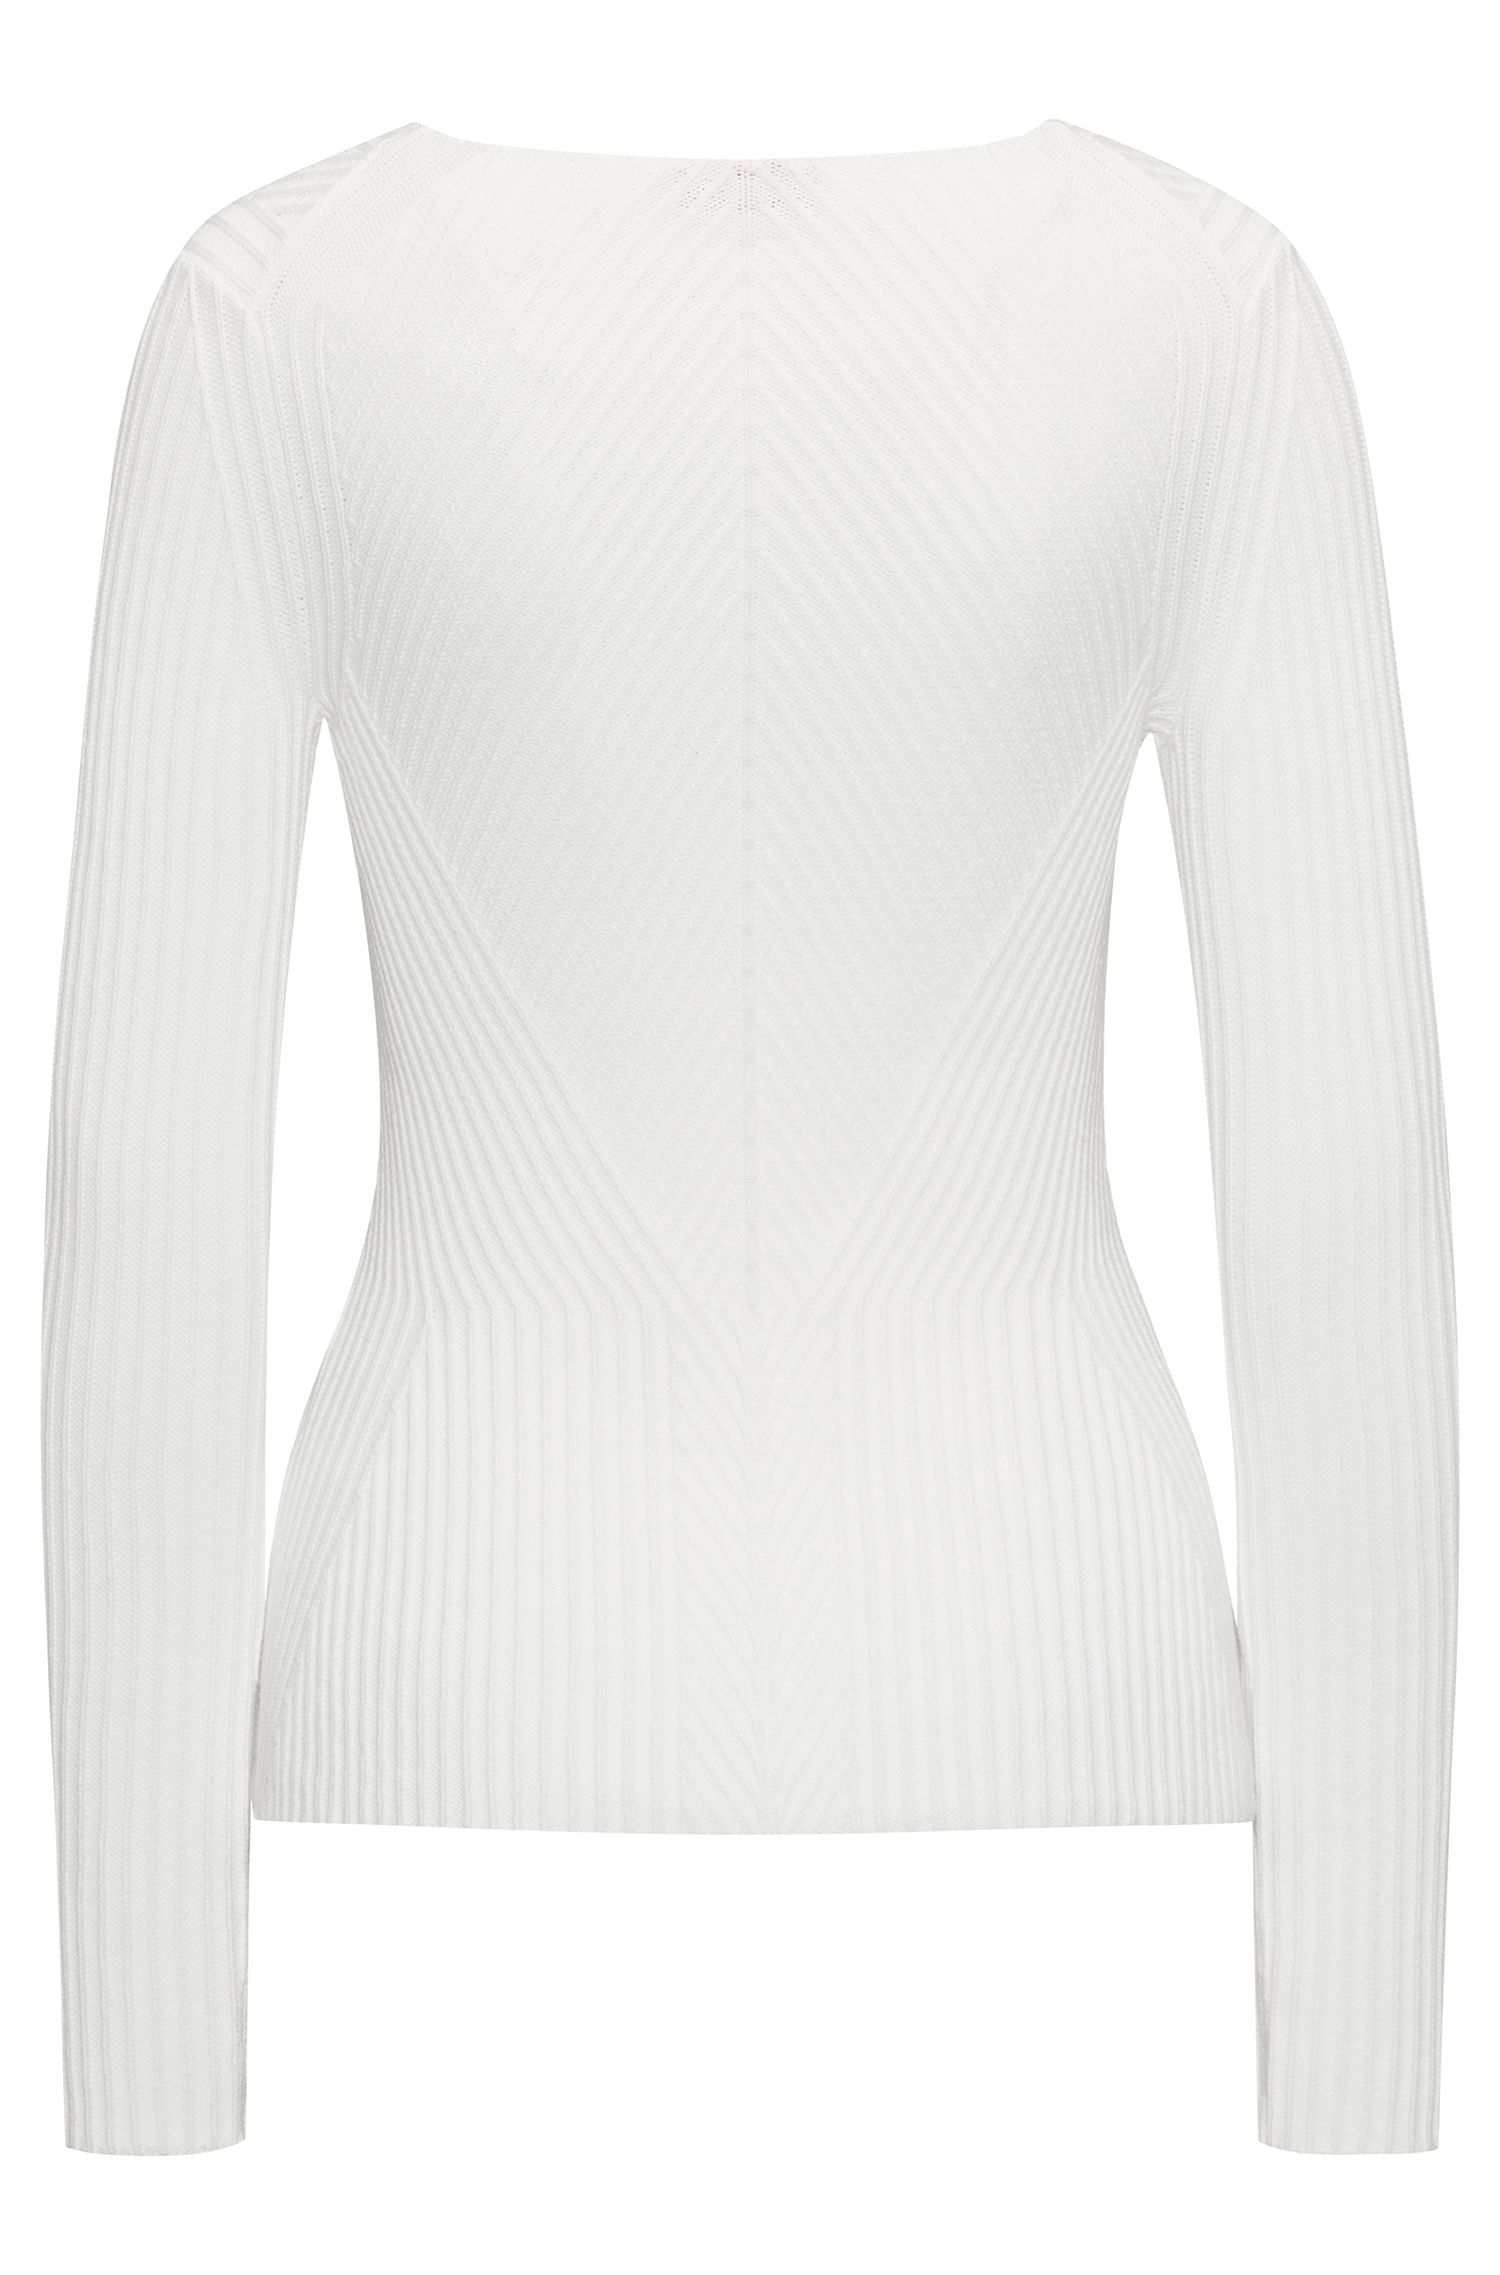 V-neck peplum sweater in an engineered ribbed structure